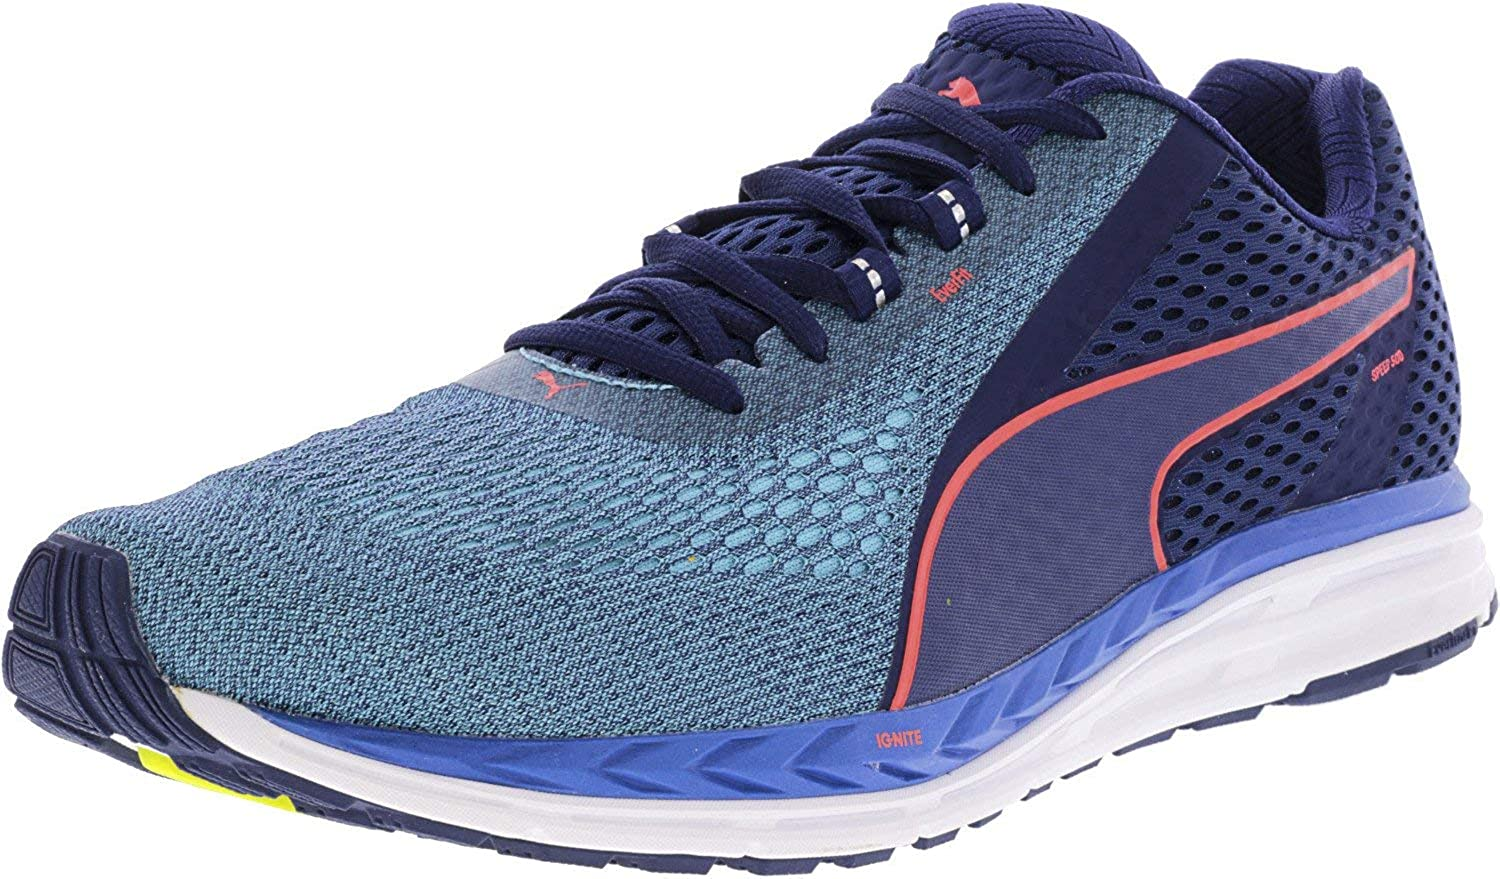 PUMA Men's Speed 500 Ignite 2 Running shoes